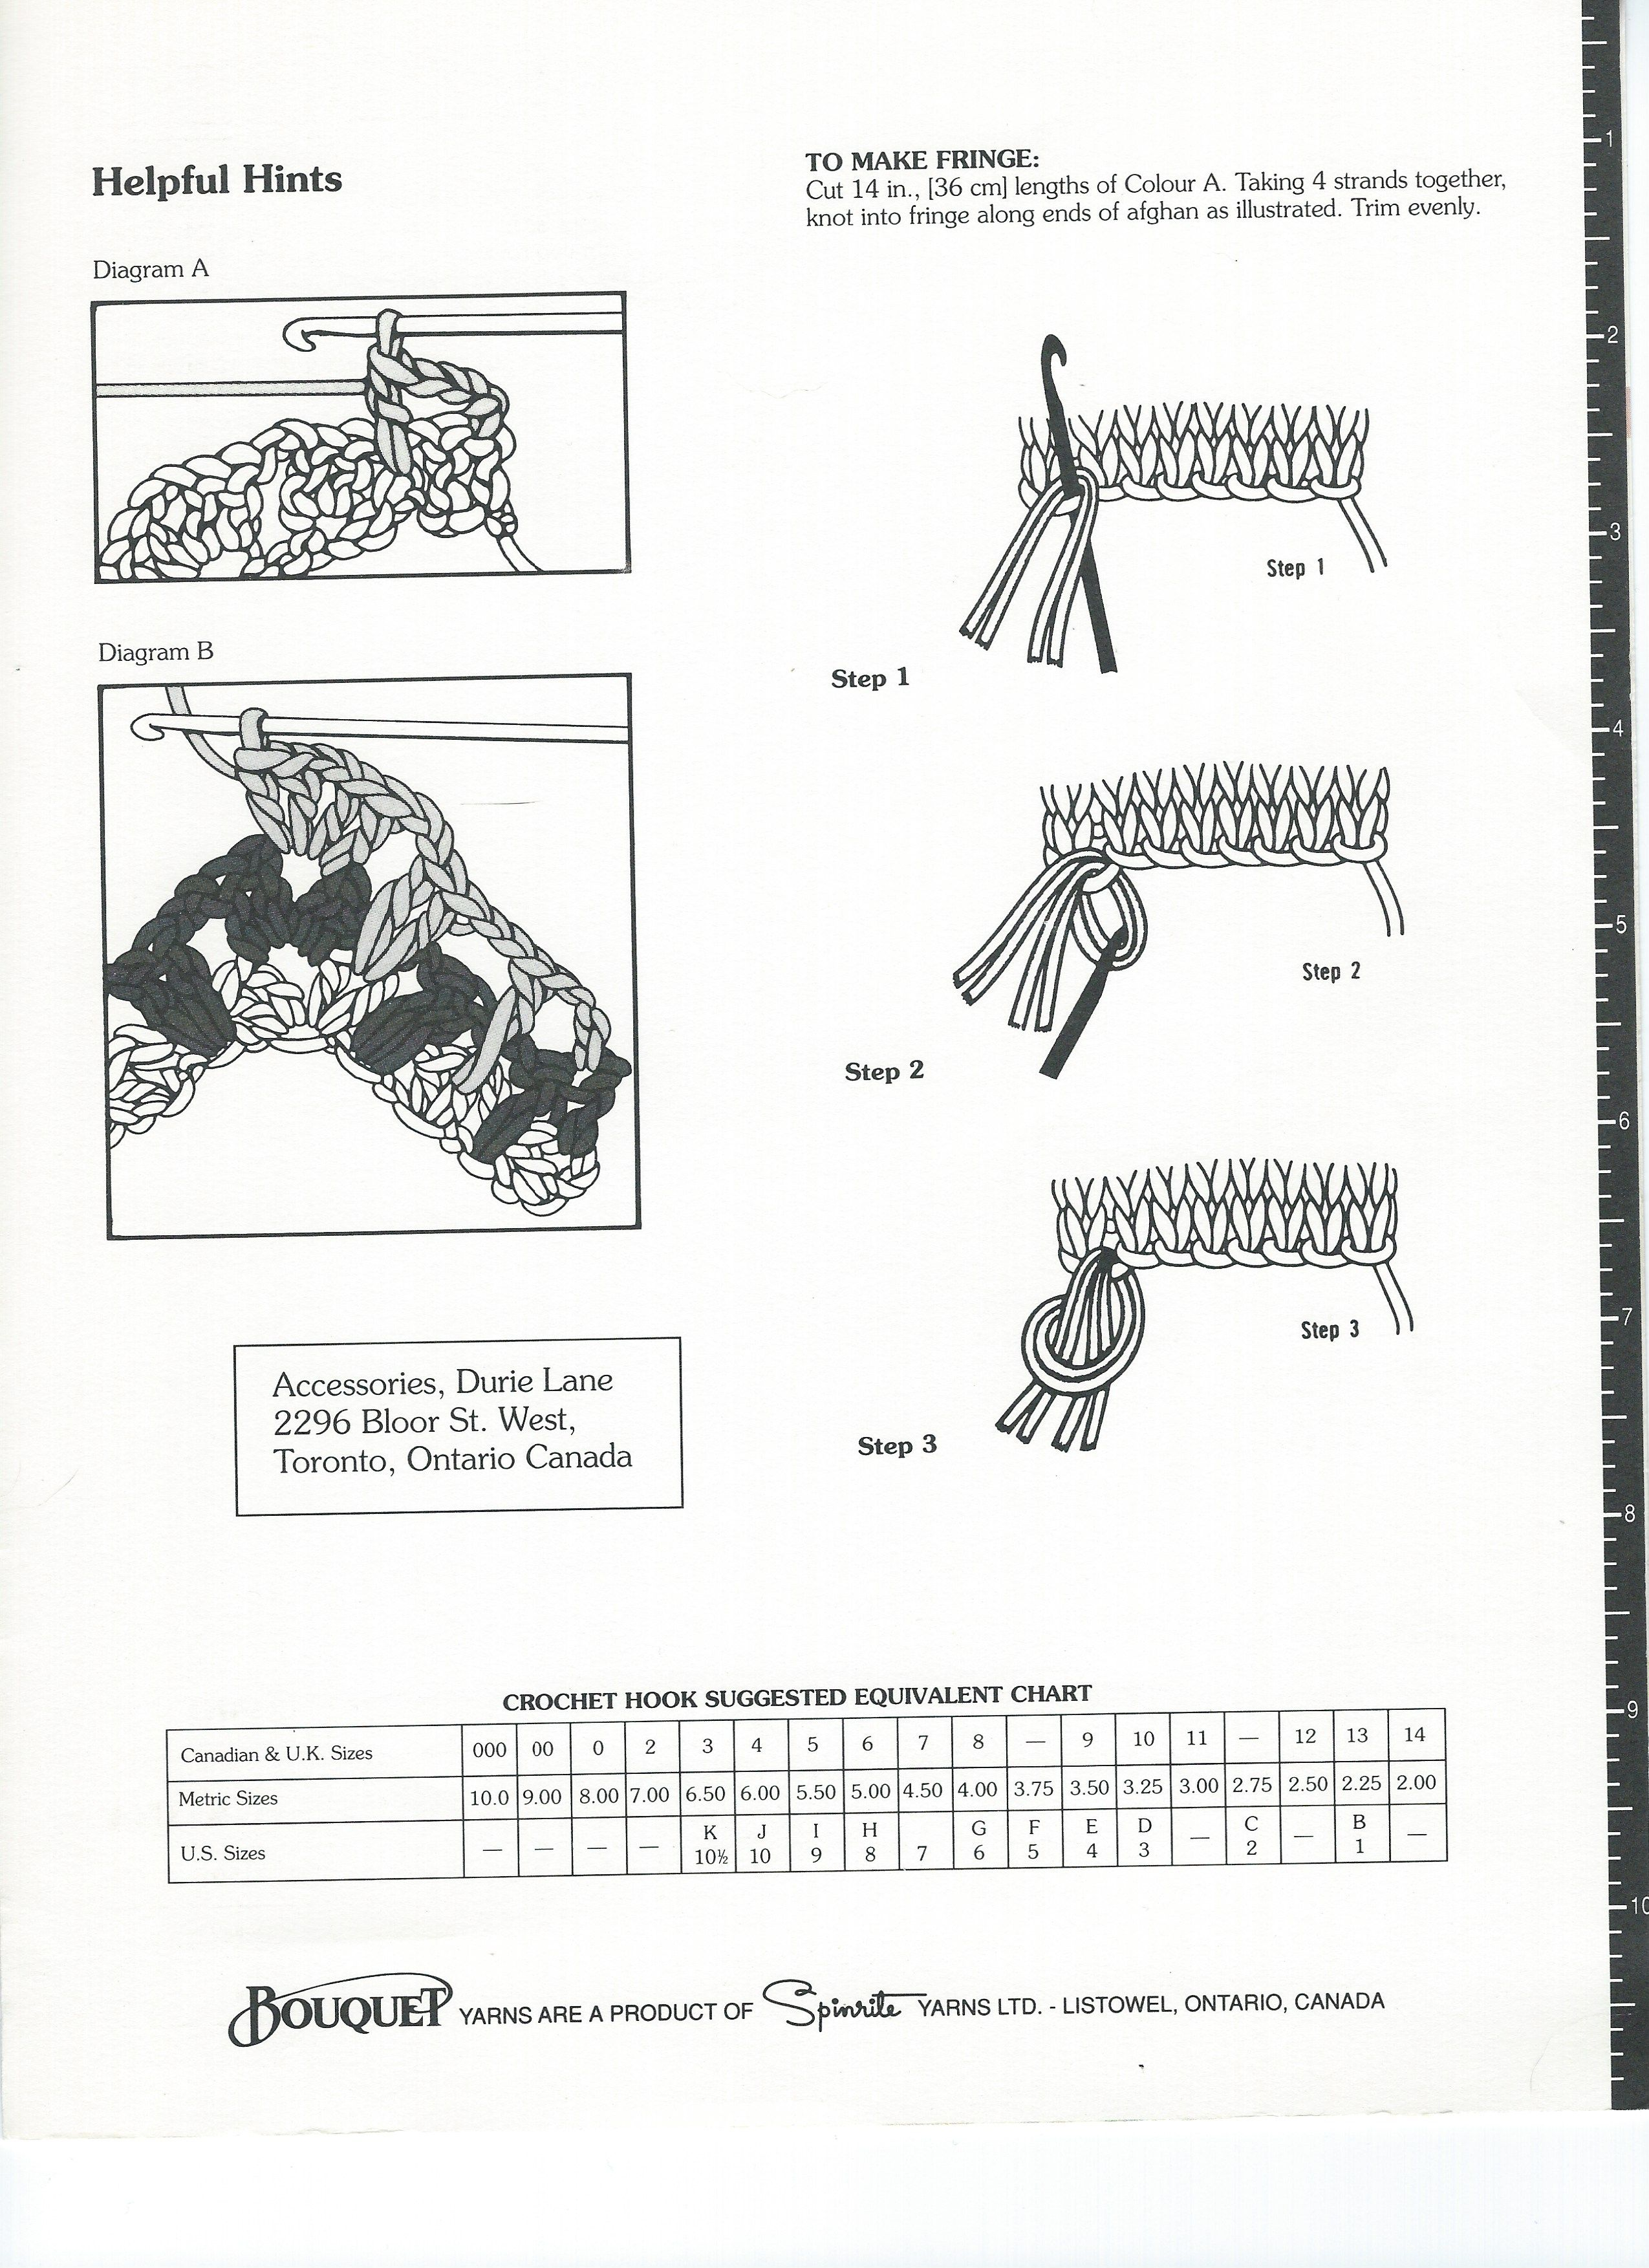 HELPFUL DIAGRAMS FOR THE LACY CHEVRON AFGHAN PATTERN~ PART 2 (Breaking amish)